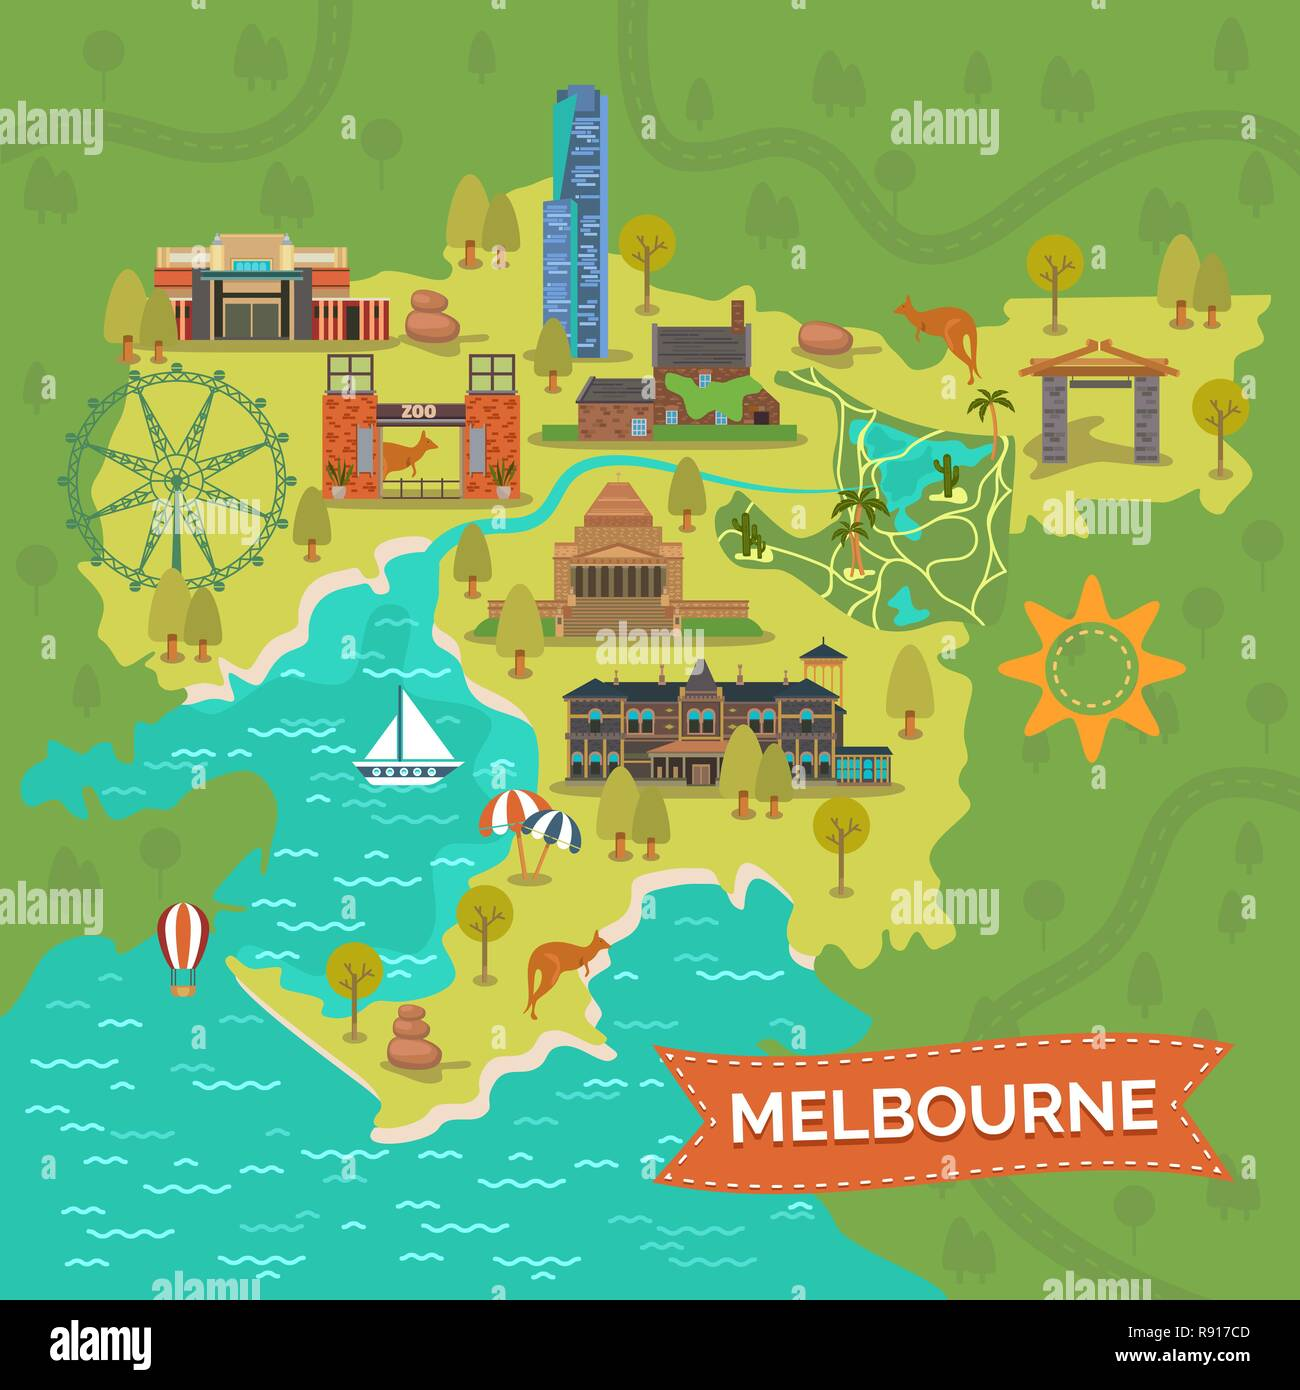 Map Of Melbourne Australia.Melbourne Australia Map Stock Vector Art Illustration Vector